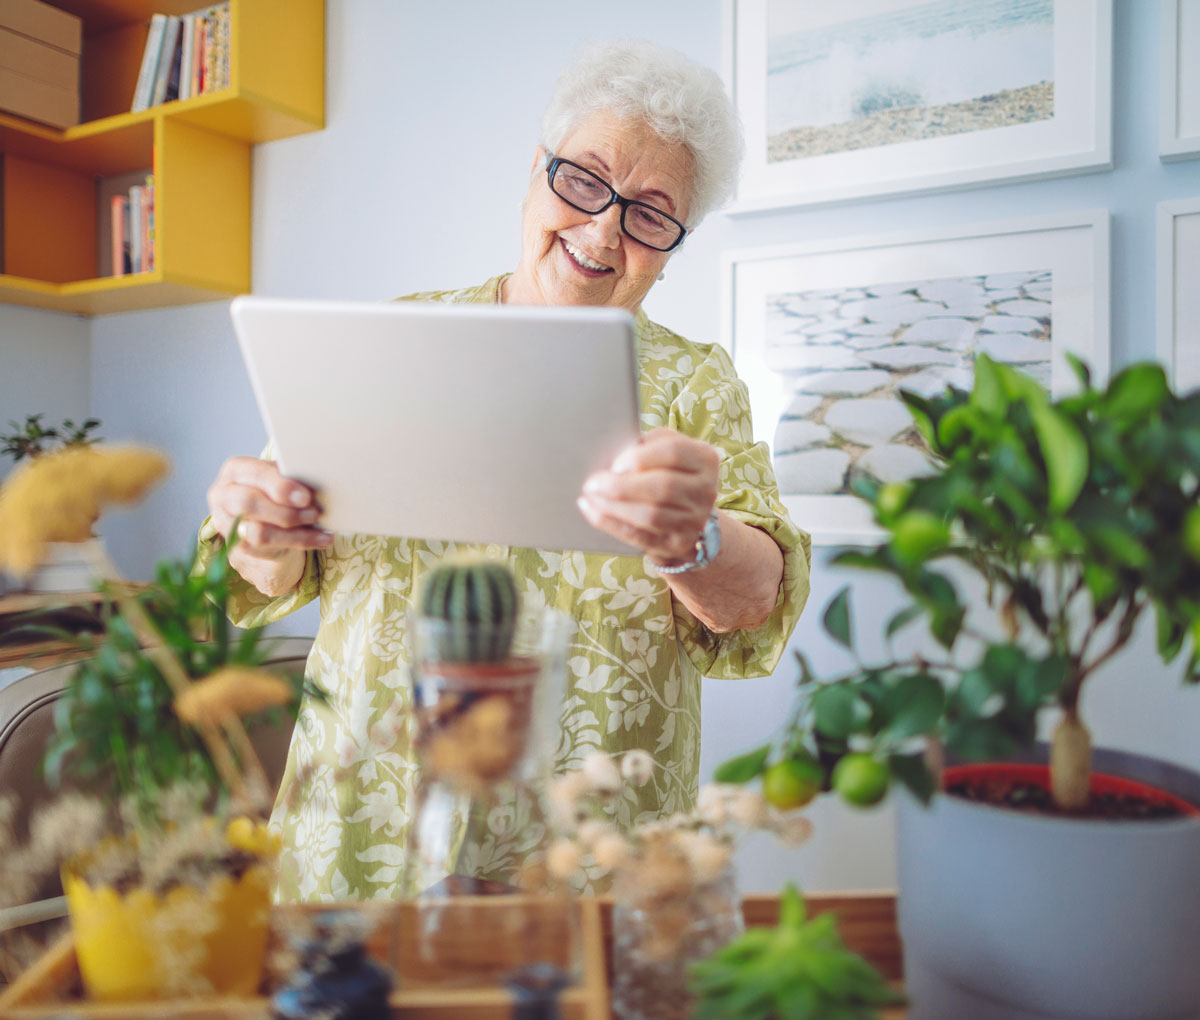 How Technology Can Help Seniors and Families Remain Connected